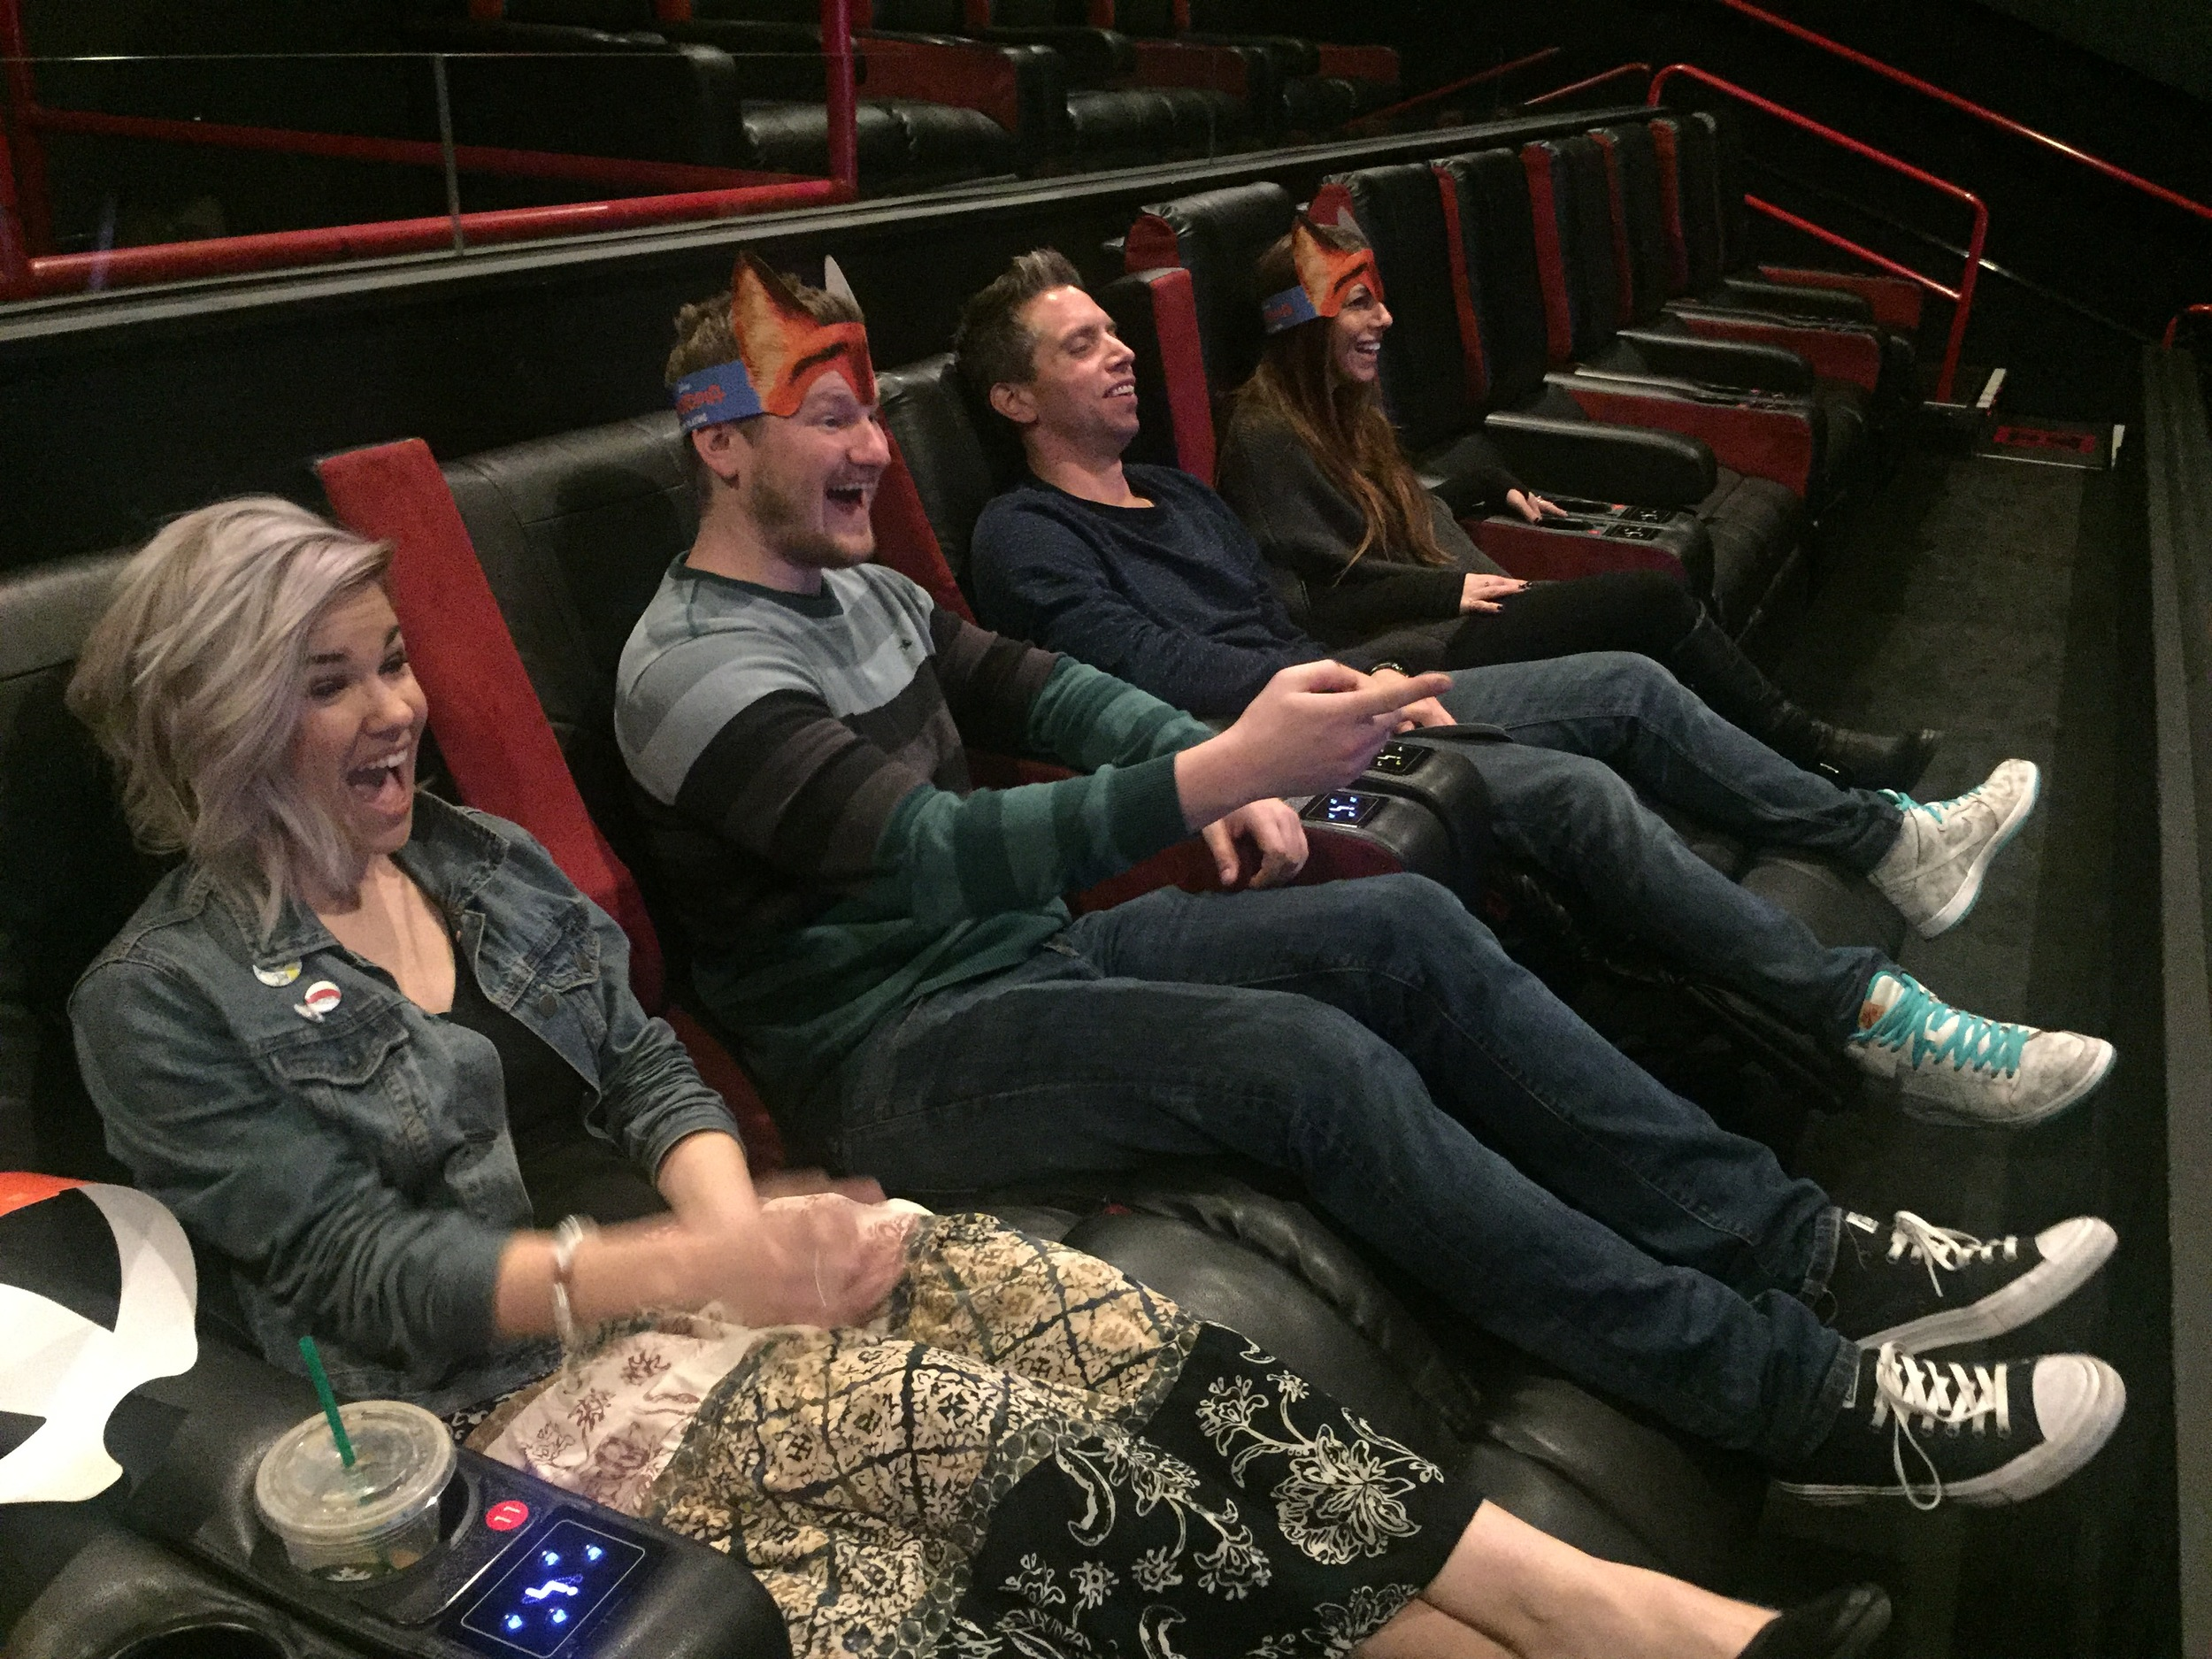 Ticket Winners: Lucy, Marc, Ritchie, and Yael making themselves at home in the cushy recliners.